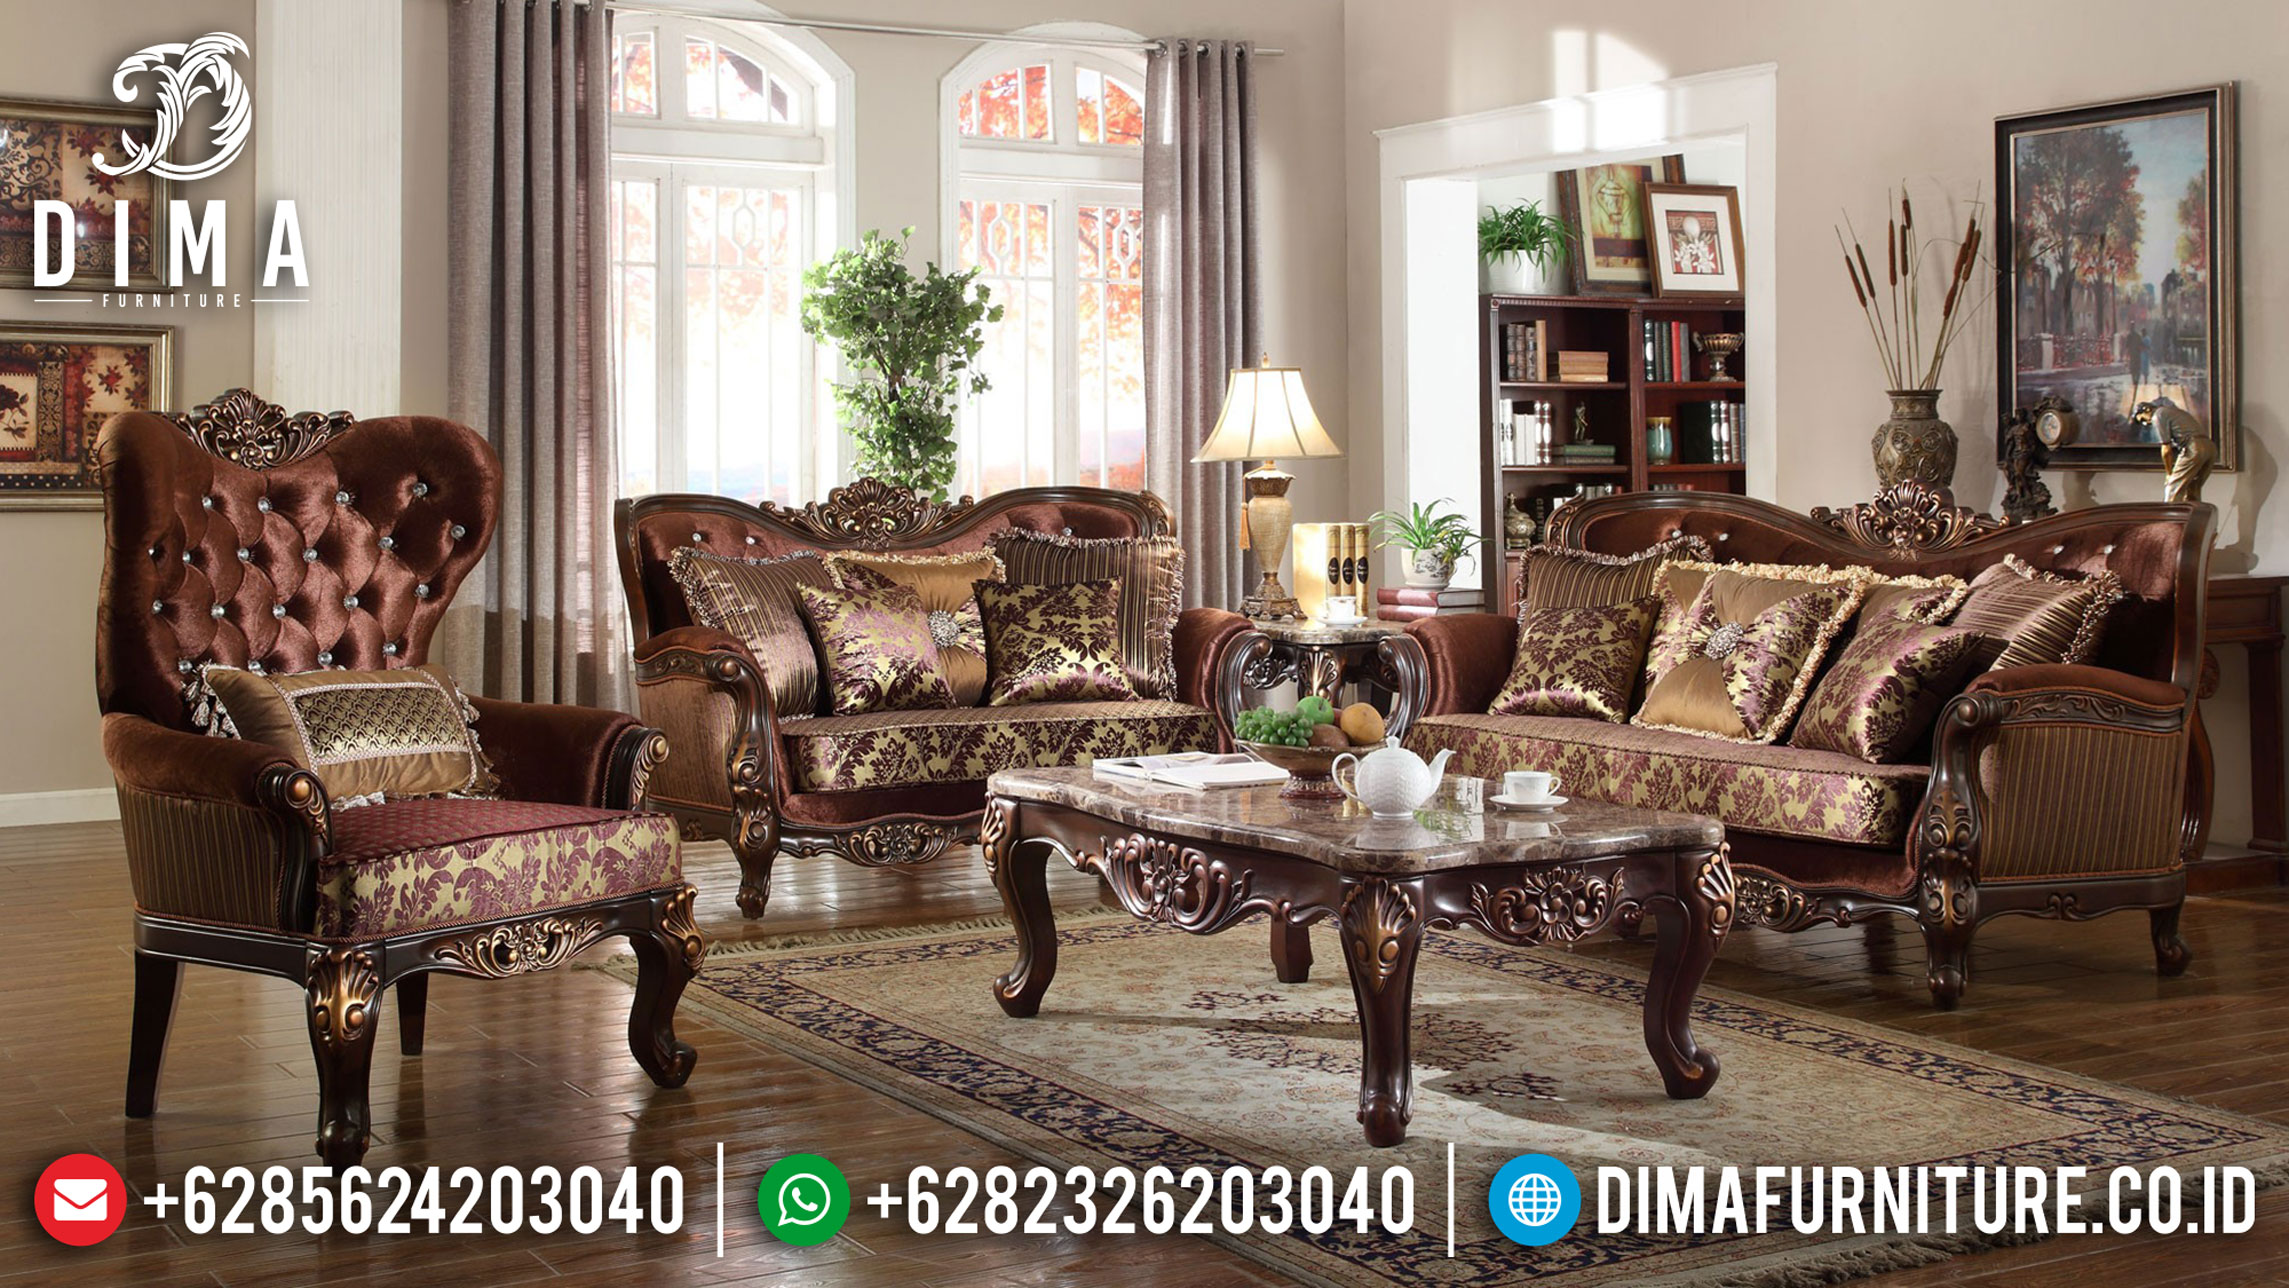 Design Elegant Sofa Tamu Jepara Luxury Classic Natural Jati Perhutani TTJ-0989